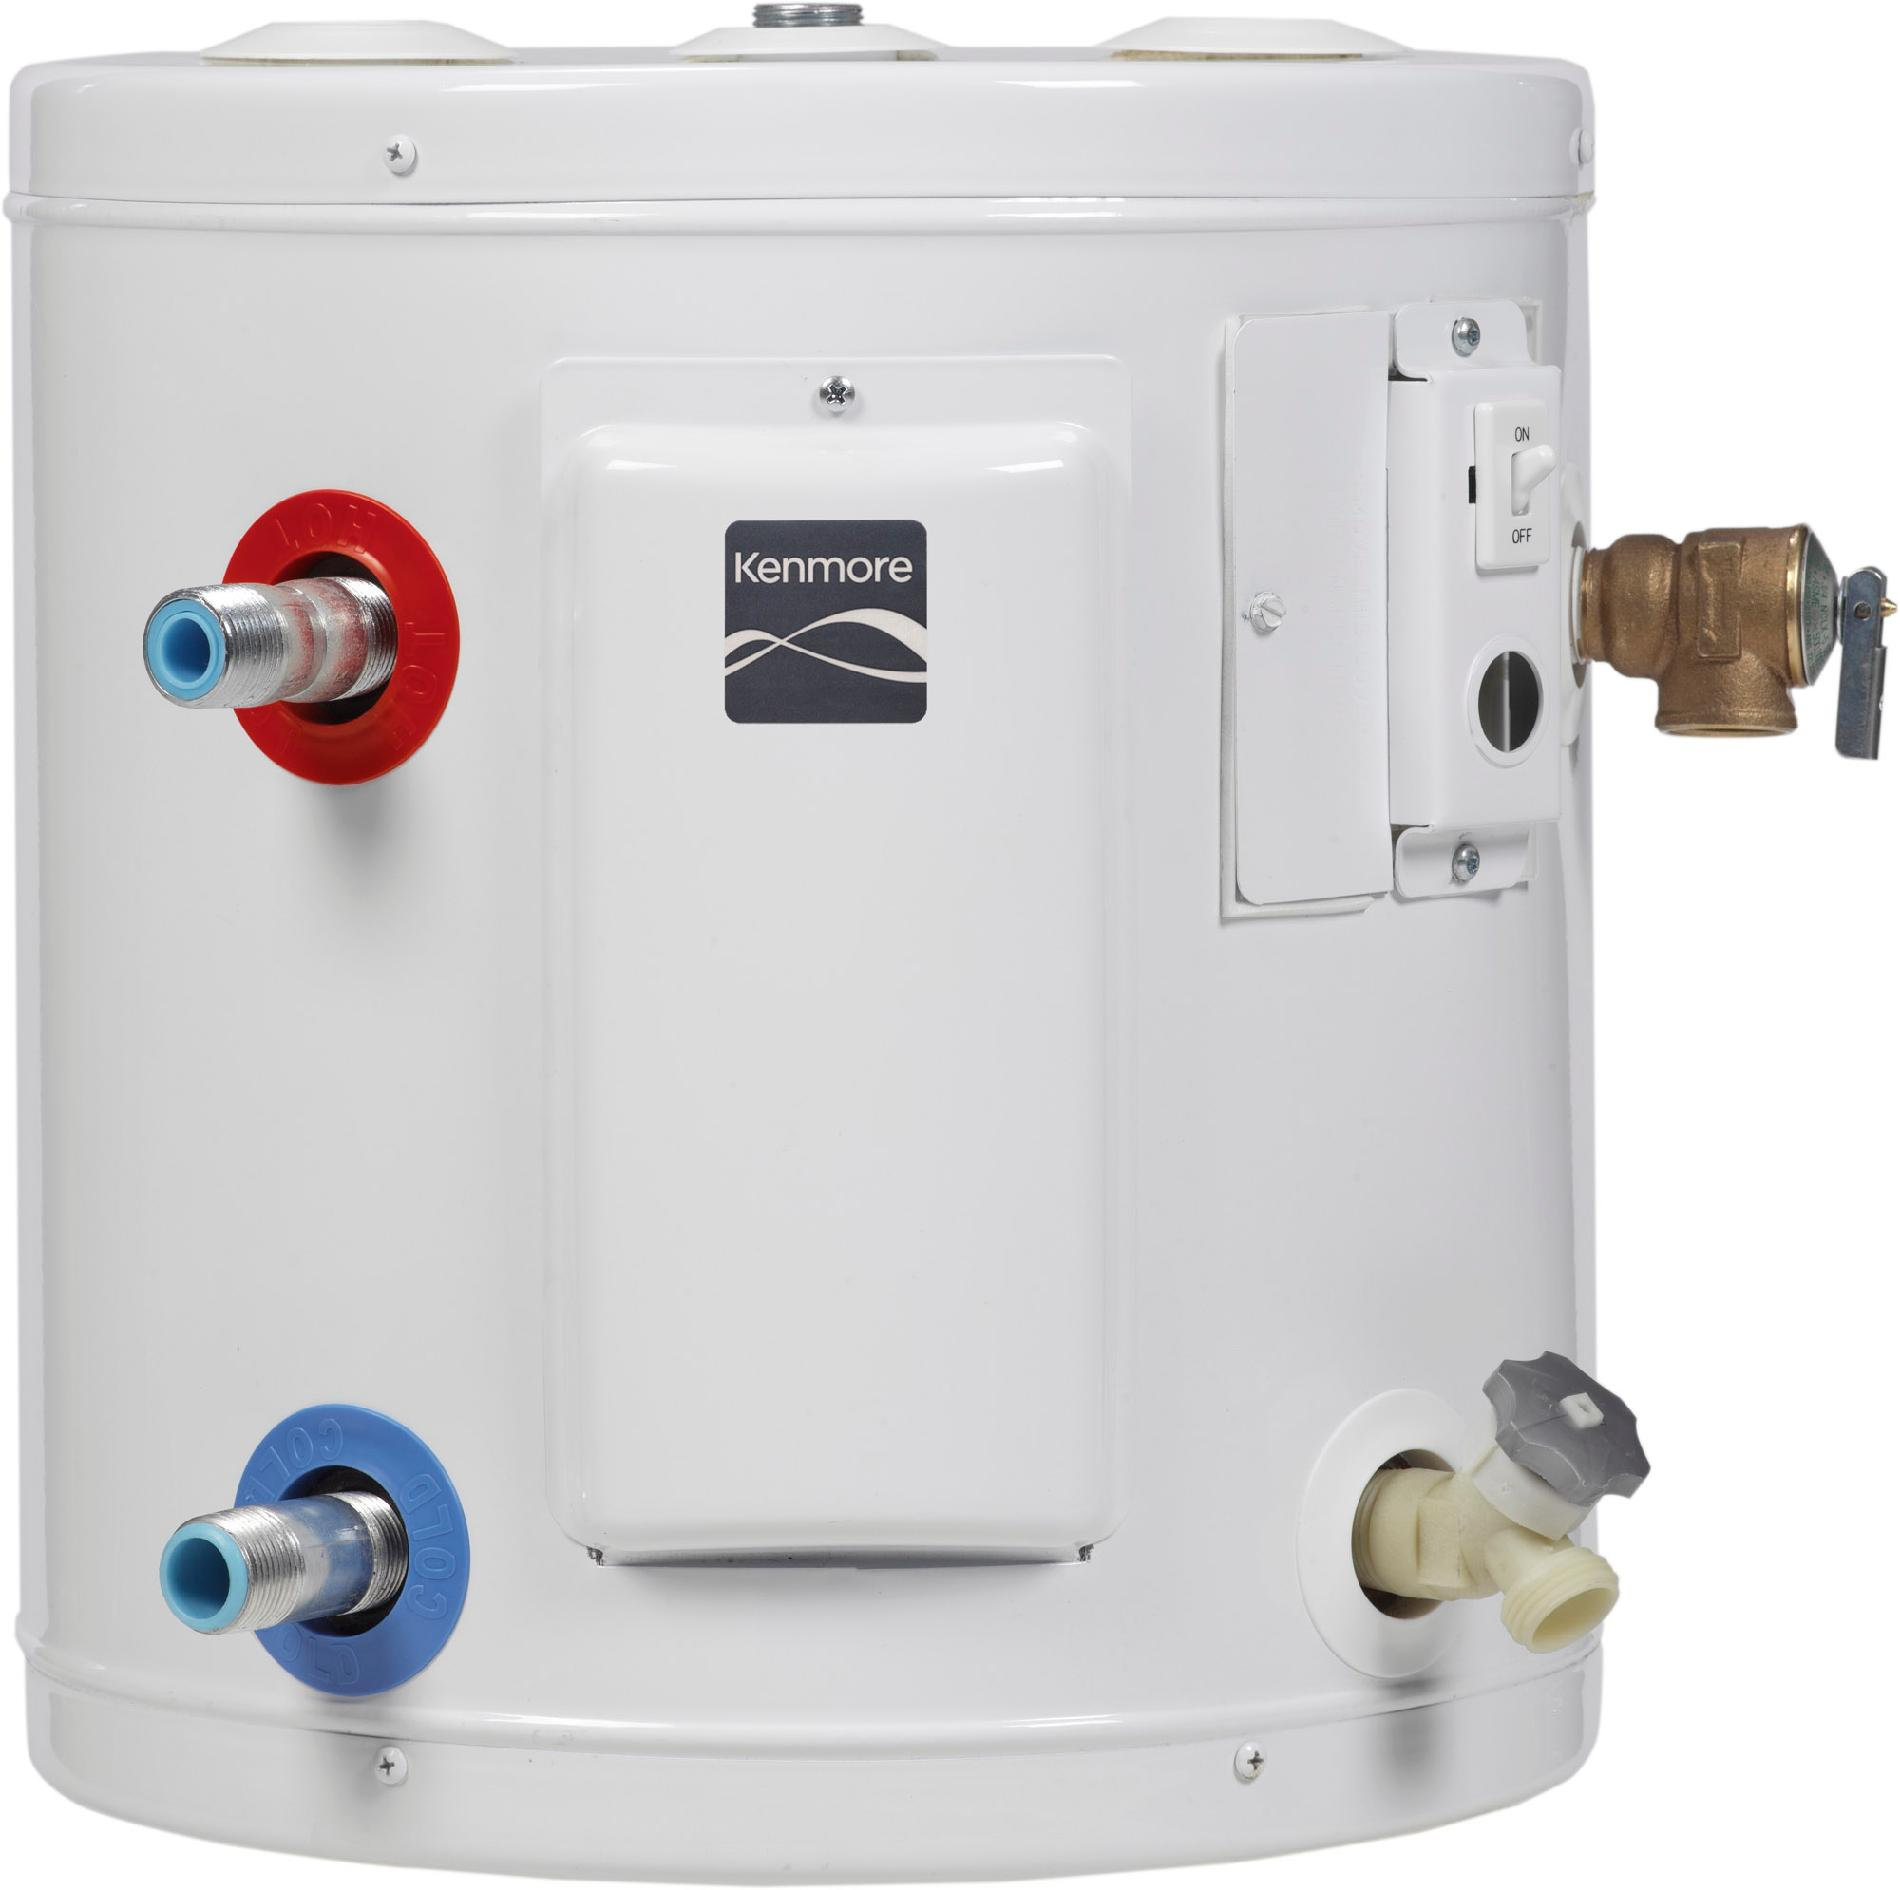 Kenmore 10 gal. 6-Year Compact Electric Water Heater